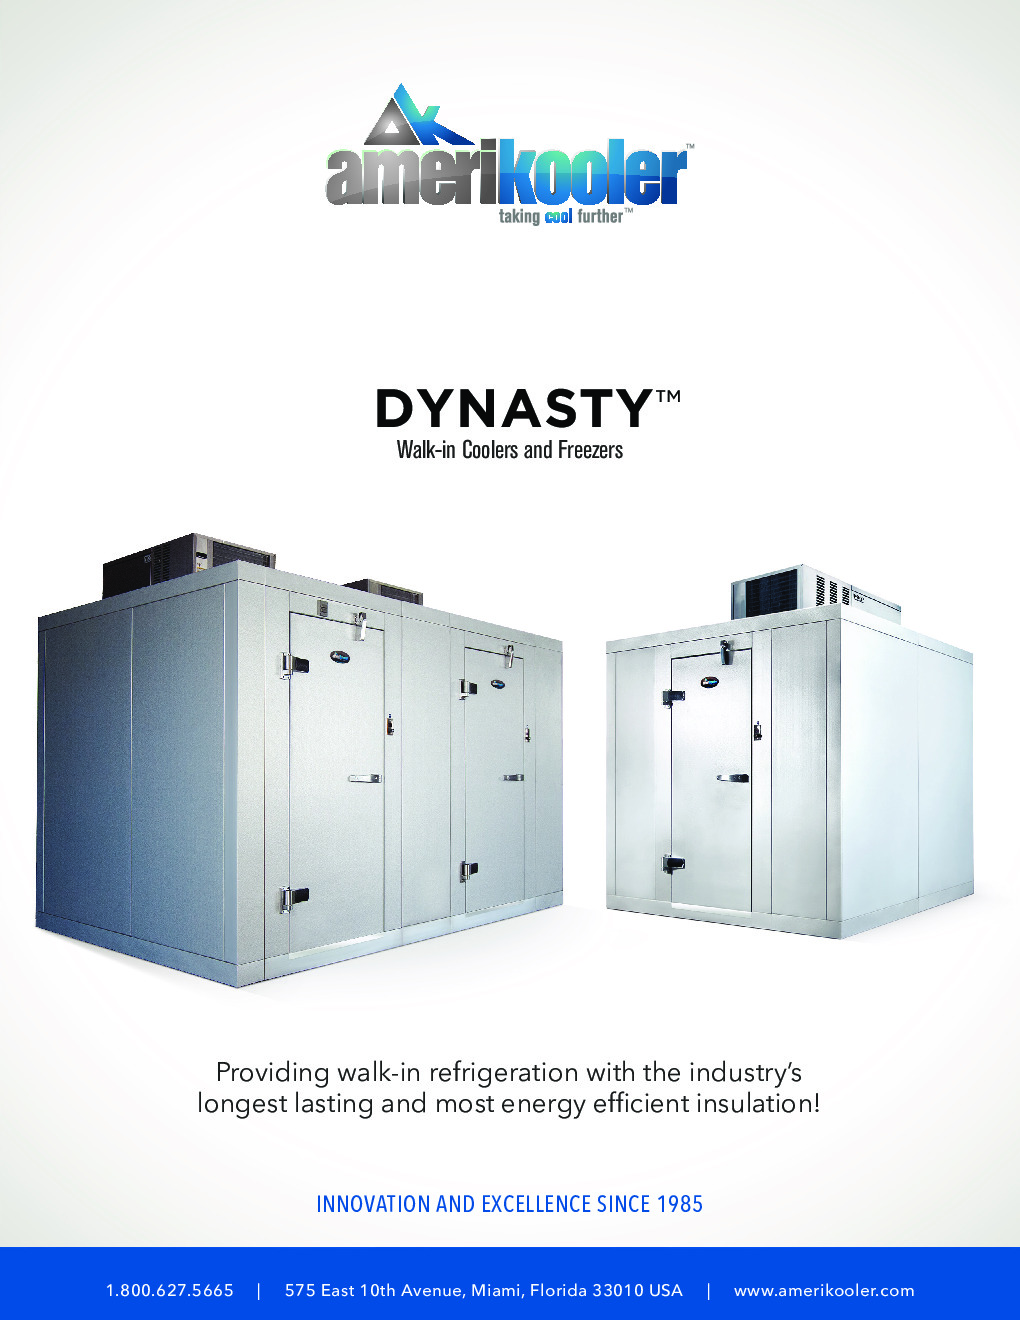 AmeriKooler DW091477F-7/7-SC 9' X 14' Walk-In Cooler, 7' L Cooler with Floor and 7' L Freezer, Self Contained